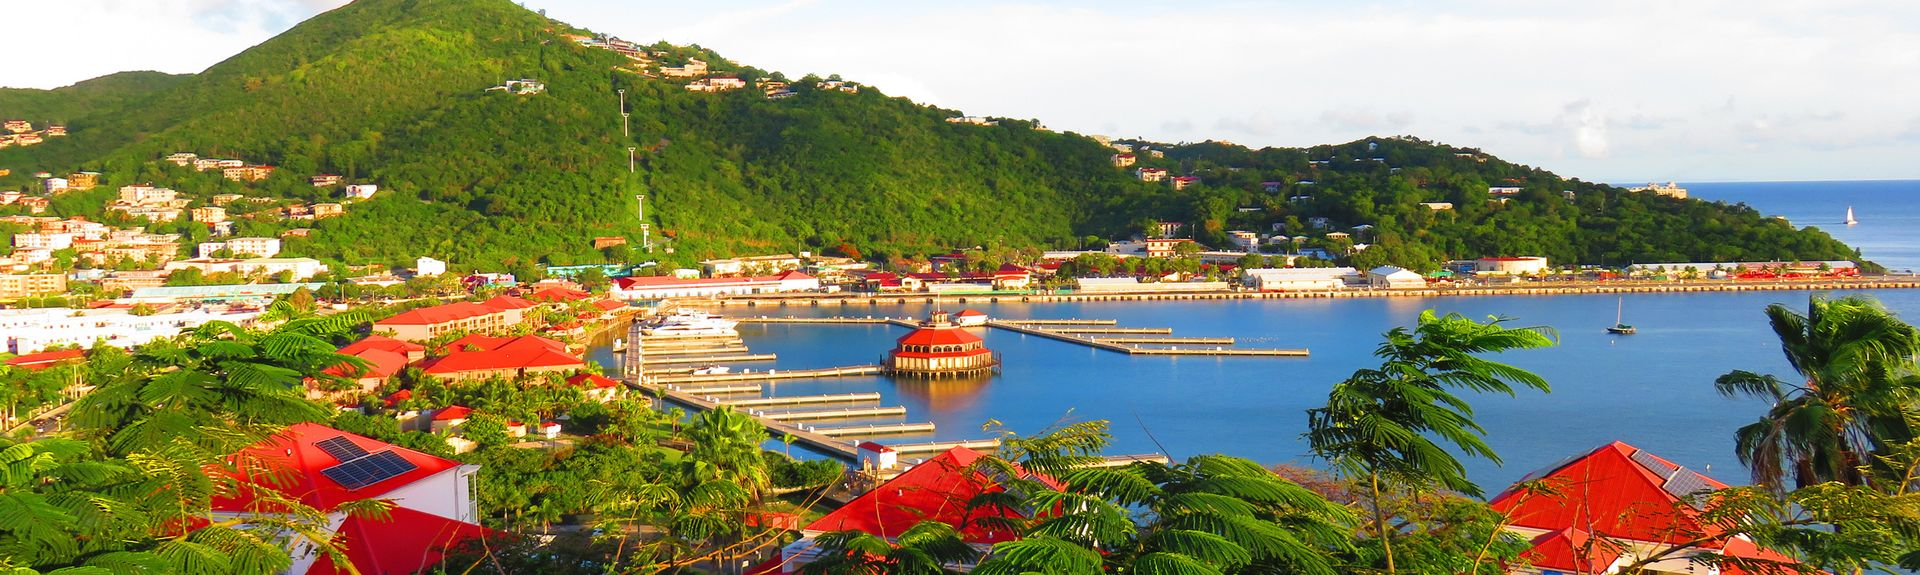 Estate Charlotte Amalie, St. Thomas, U.S. Virgin Islands